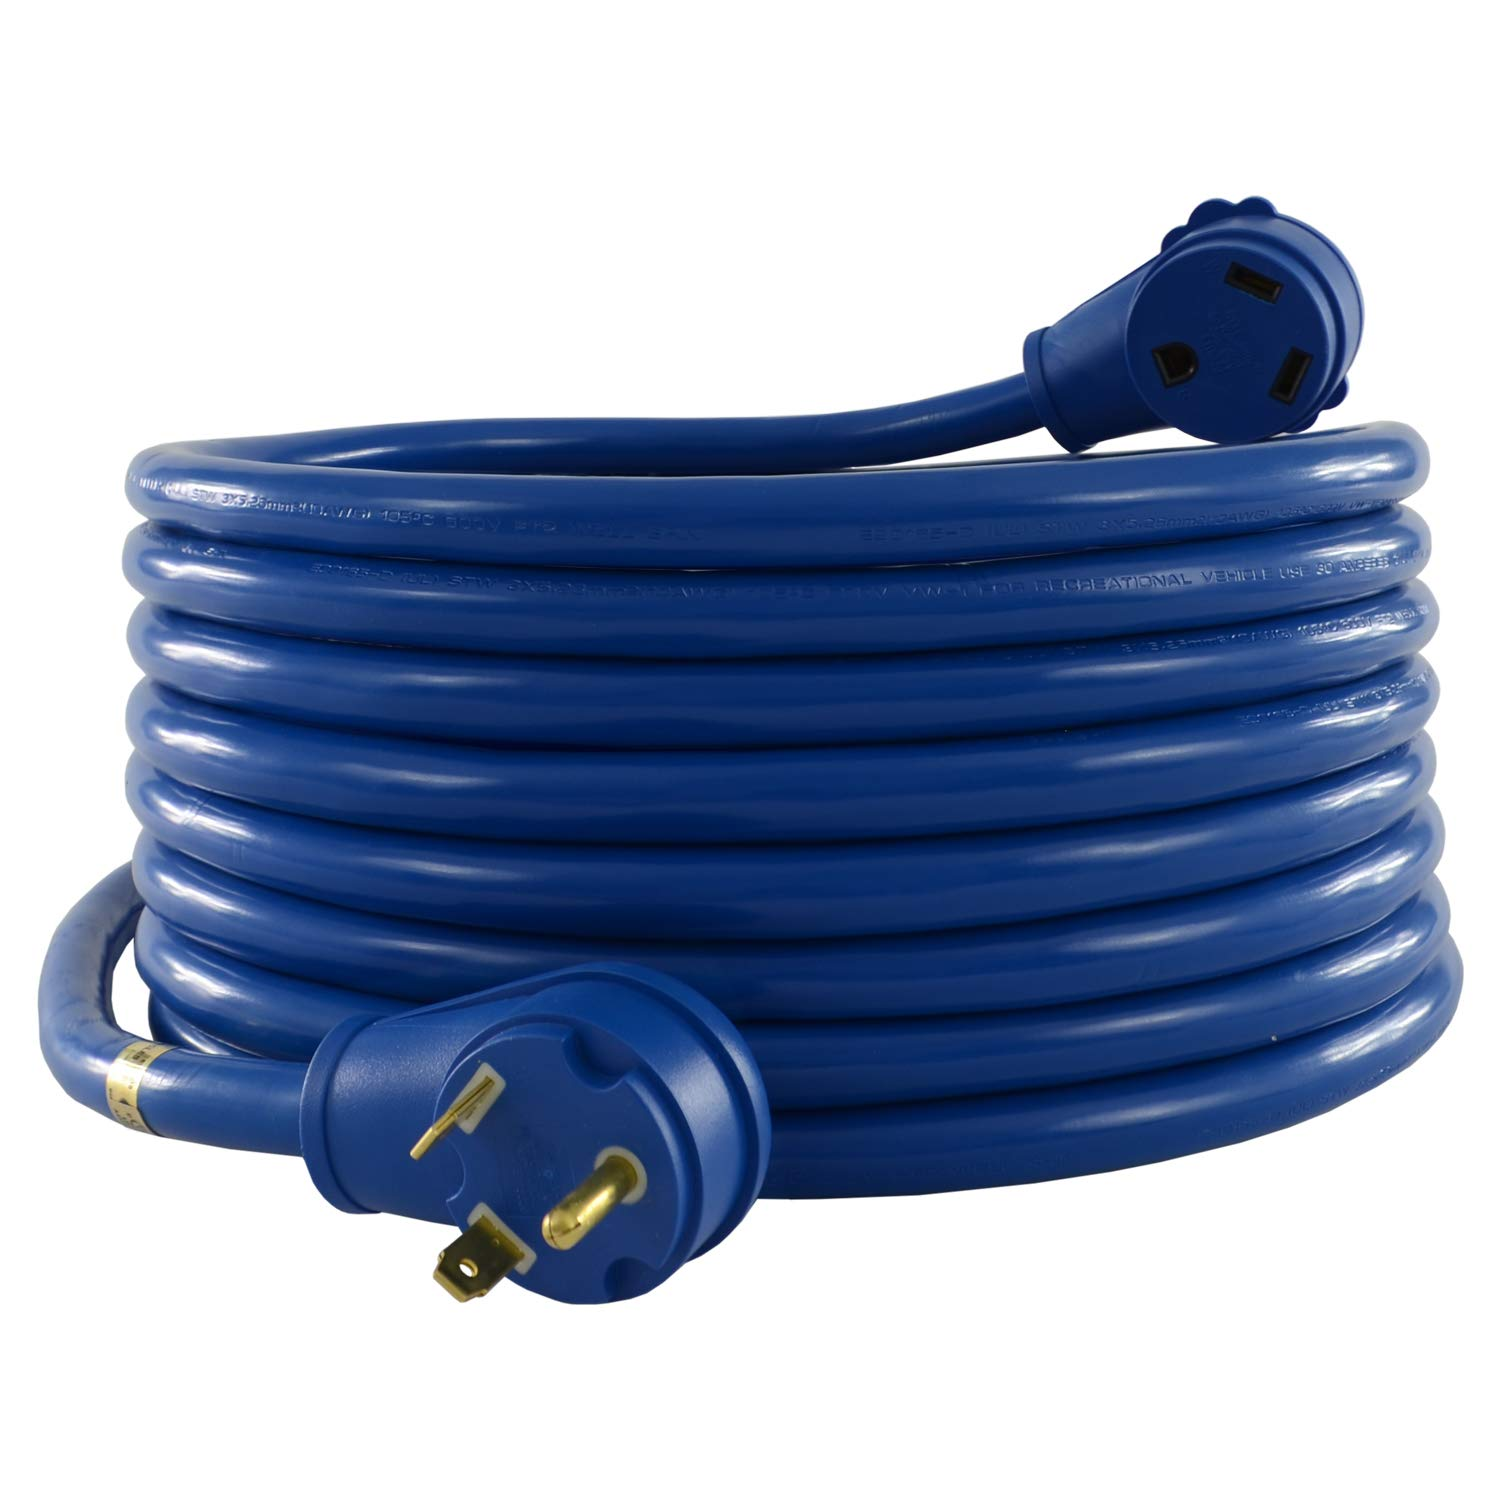 Conntek 14361, 30 Amp RV Extension Cord, Blue (25-Feet)